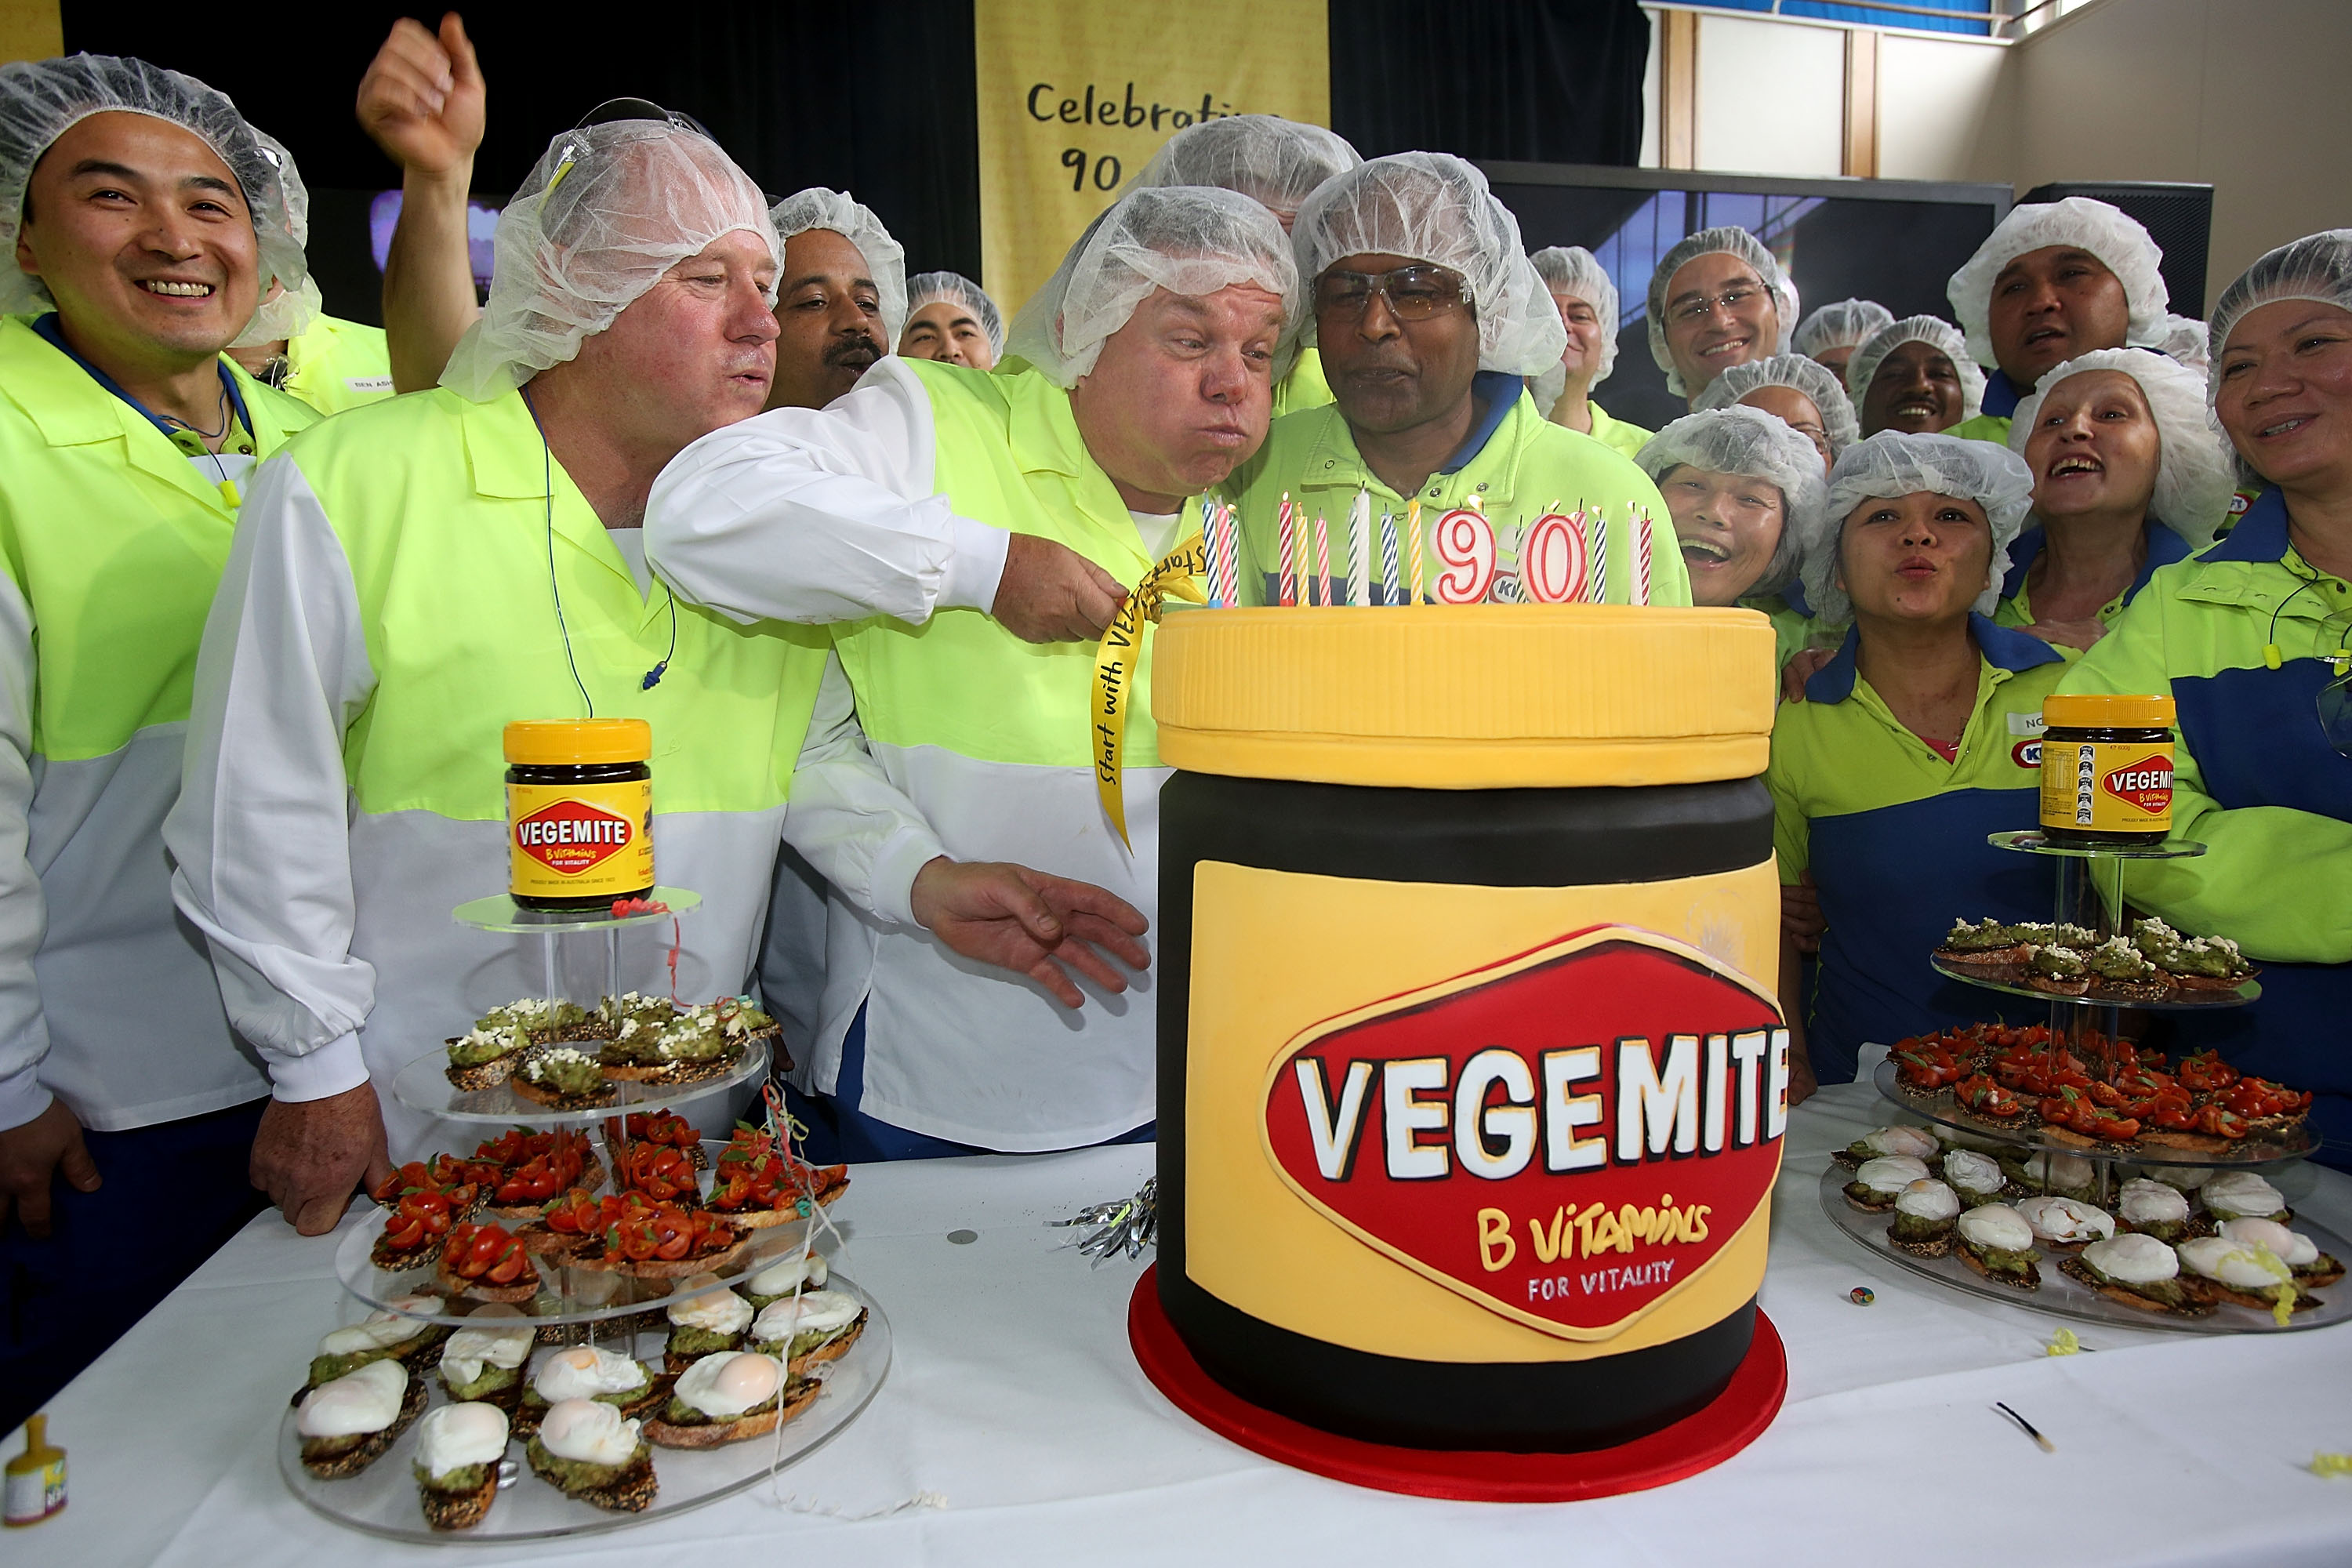 Vegemite Celebrates 90 Years